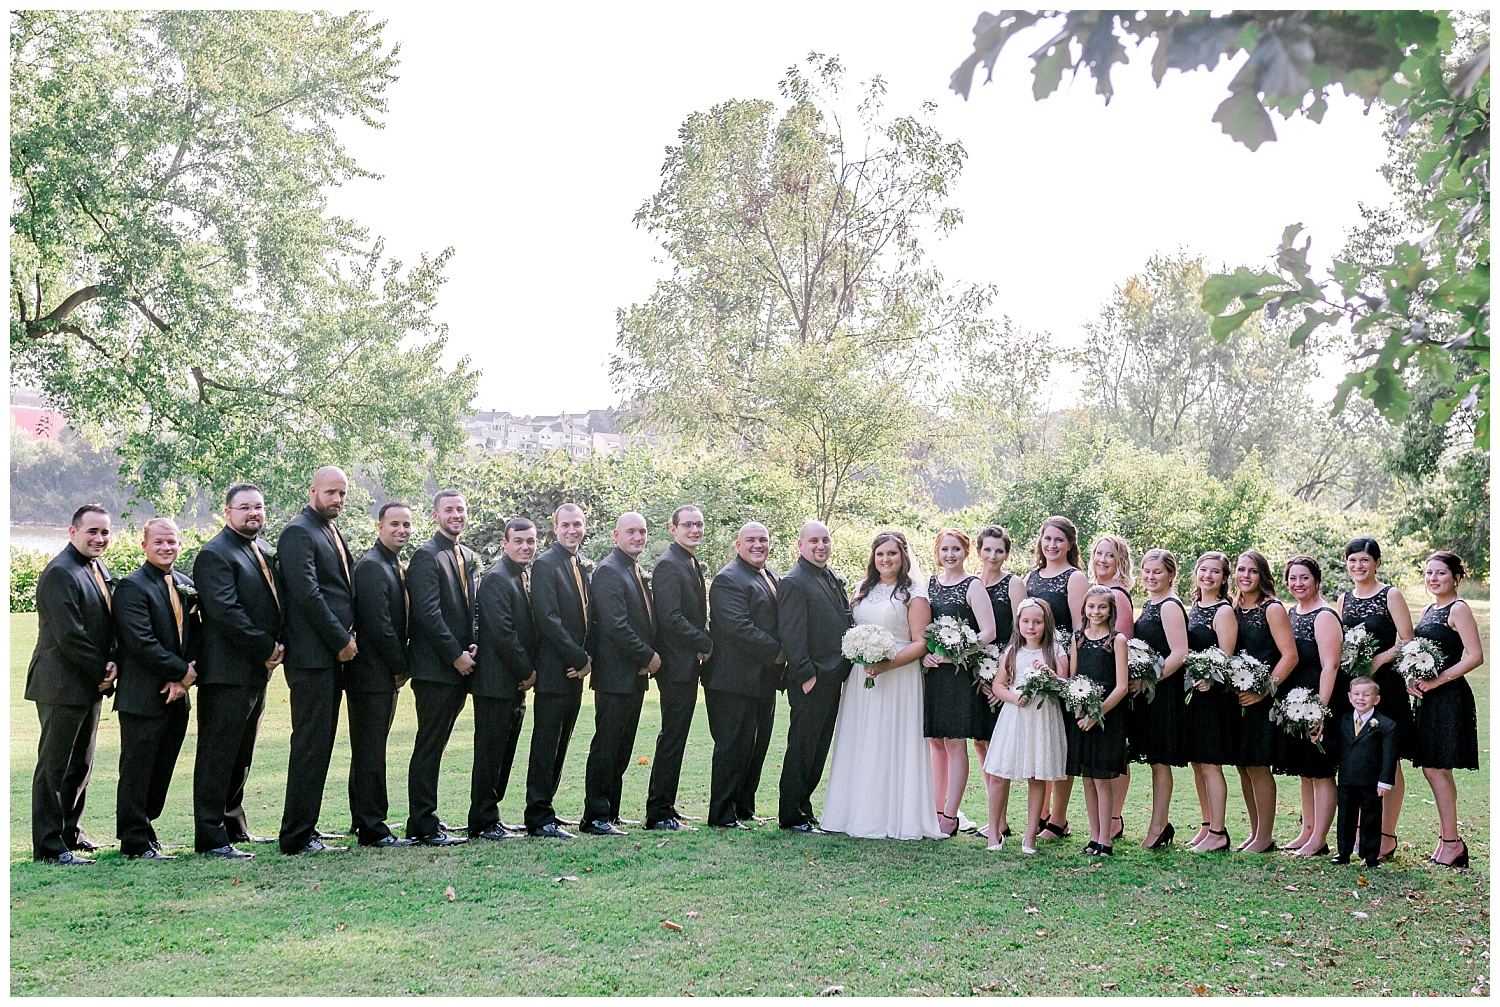 A Black and Gold Catholic Church Wedding in Wilkes Barre Pennsylvania by lehigh valley pennsylvania based wedding and lifestyle photographer Jeannie Lytle of Lytle Photography   Company (23).jpg